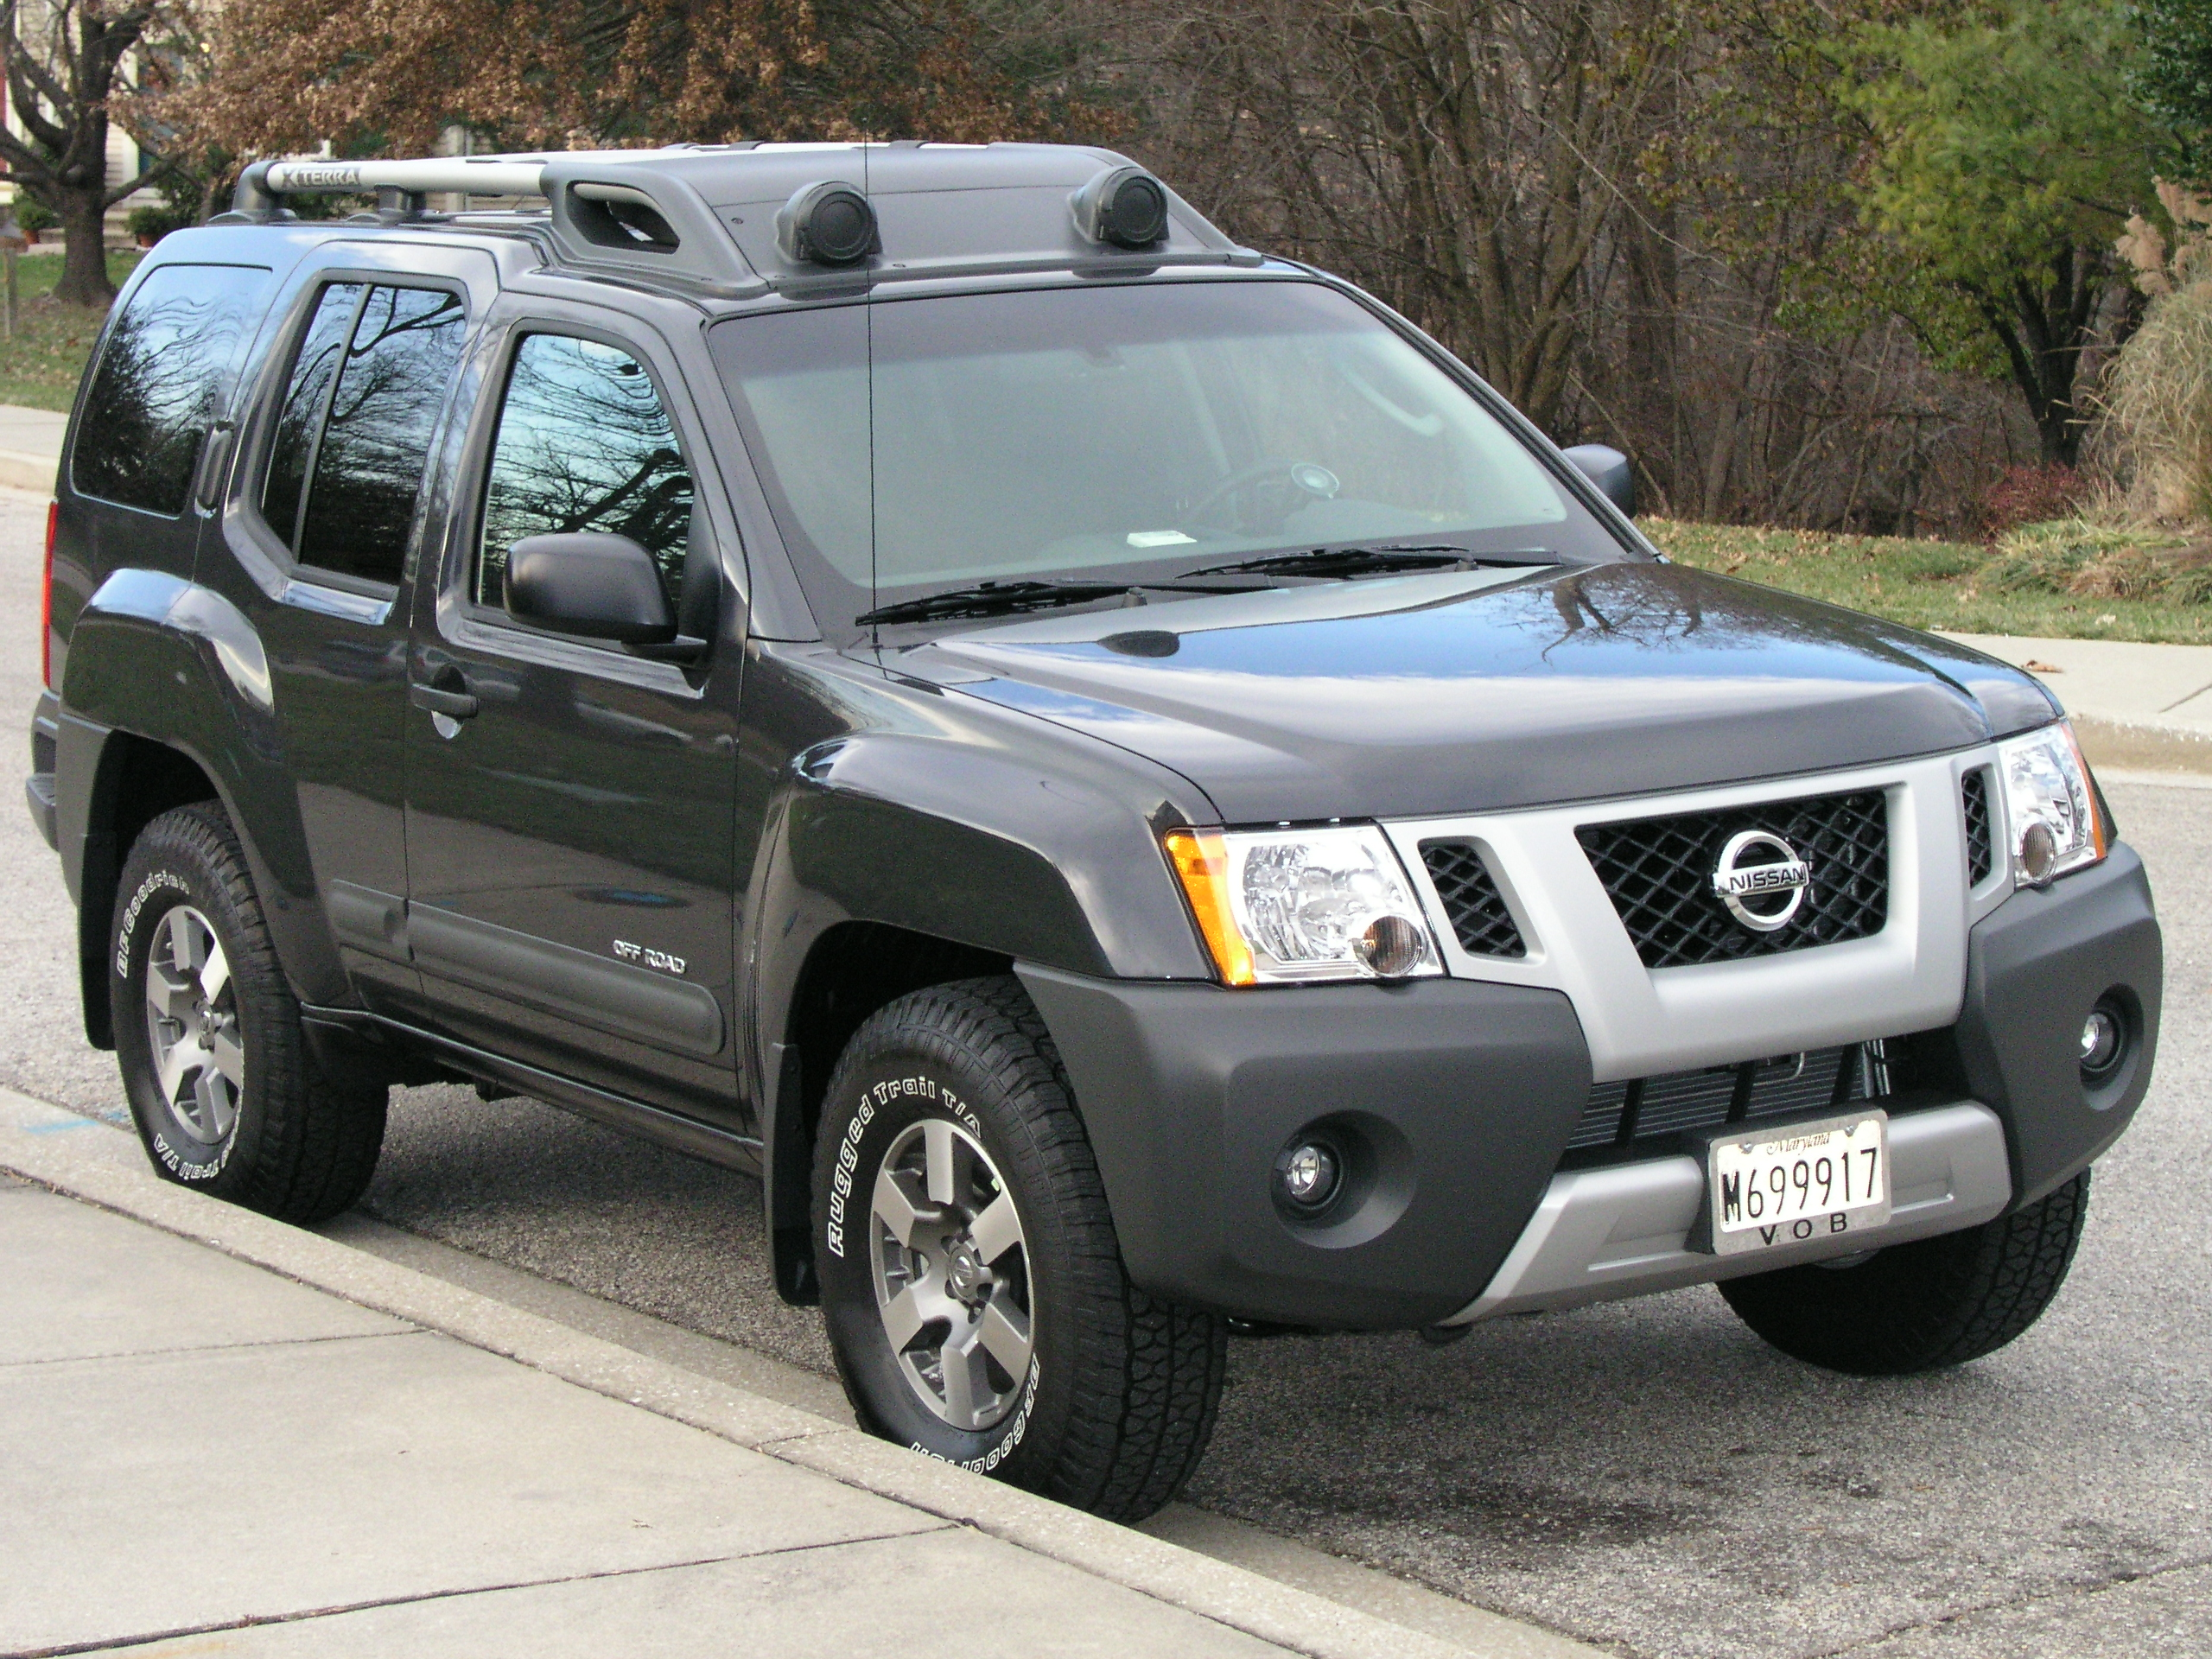 2007 Nissan Xterra Information and photos ZombieDrive